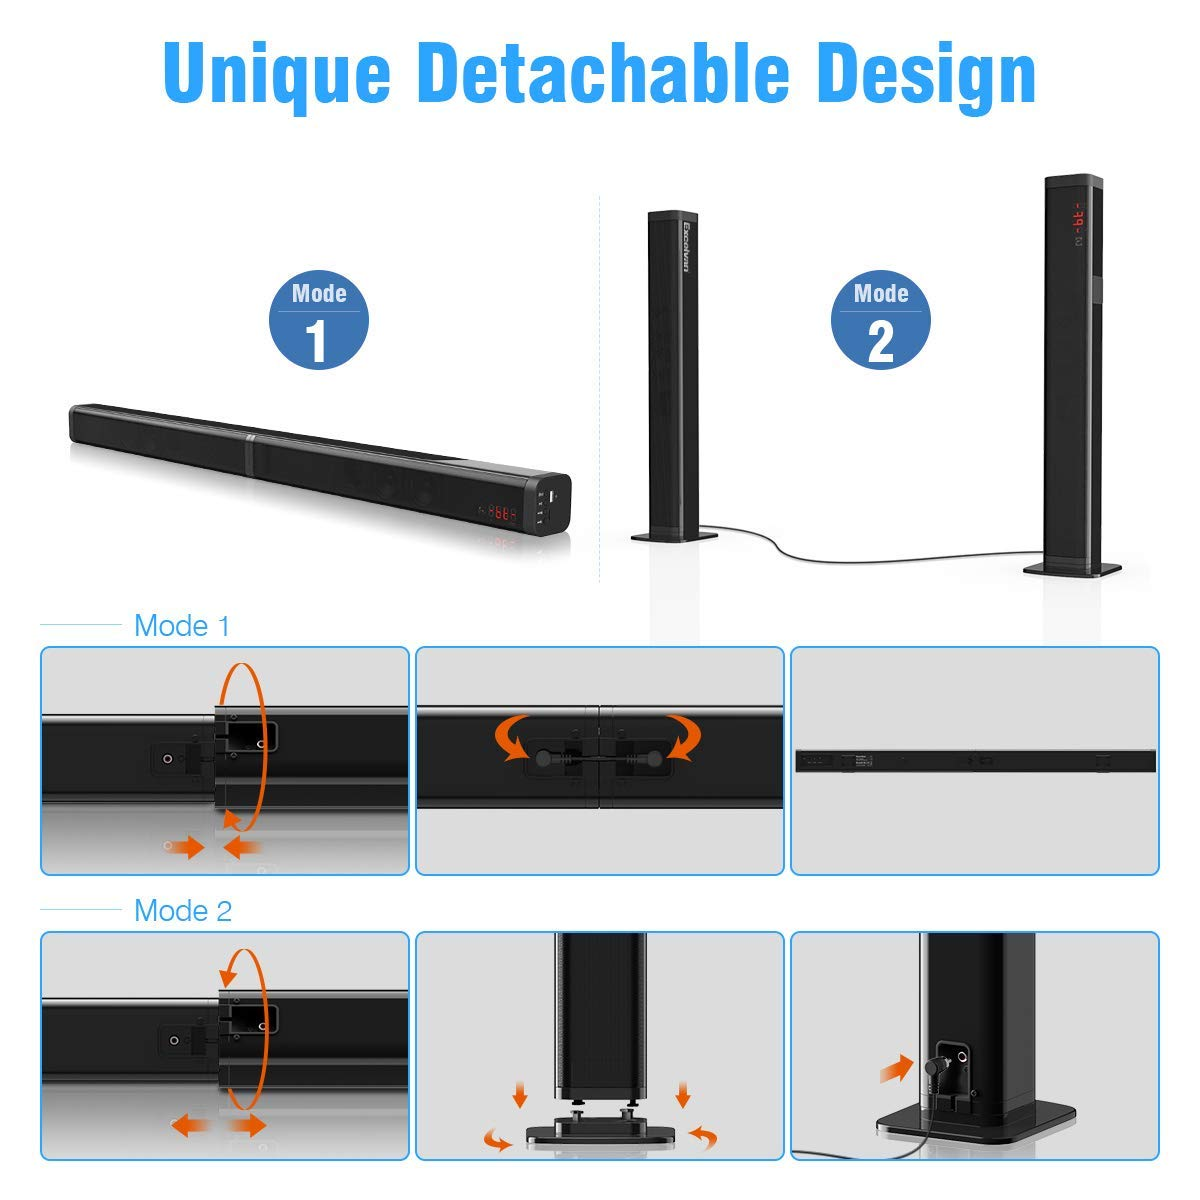 Wall Mountable Remote Control Samtronic Detachable Soundbar for TVS 37inch 80W 2.1 Channel Soundbar Speakers with Bluetooth V5.0 Sound Bars Surround Sound Home Theater Sound Bar with Subwoofer